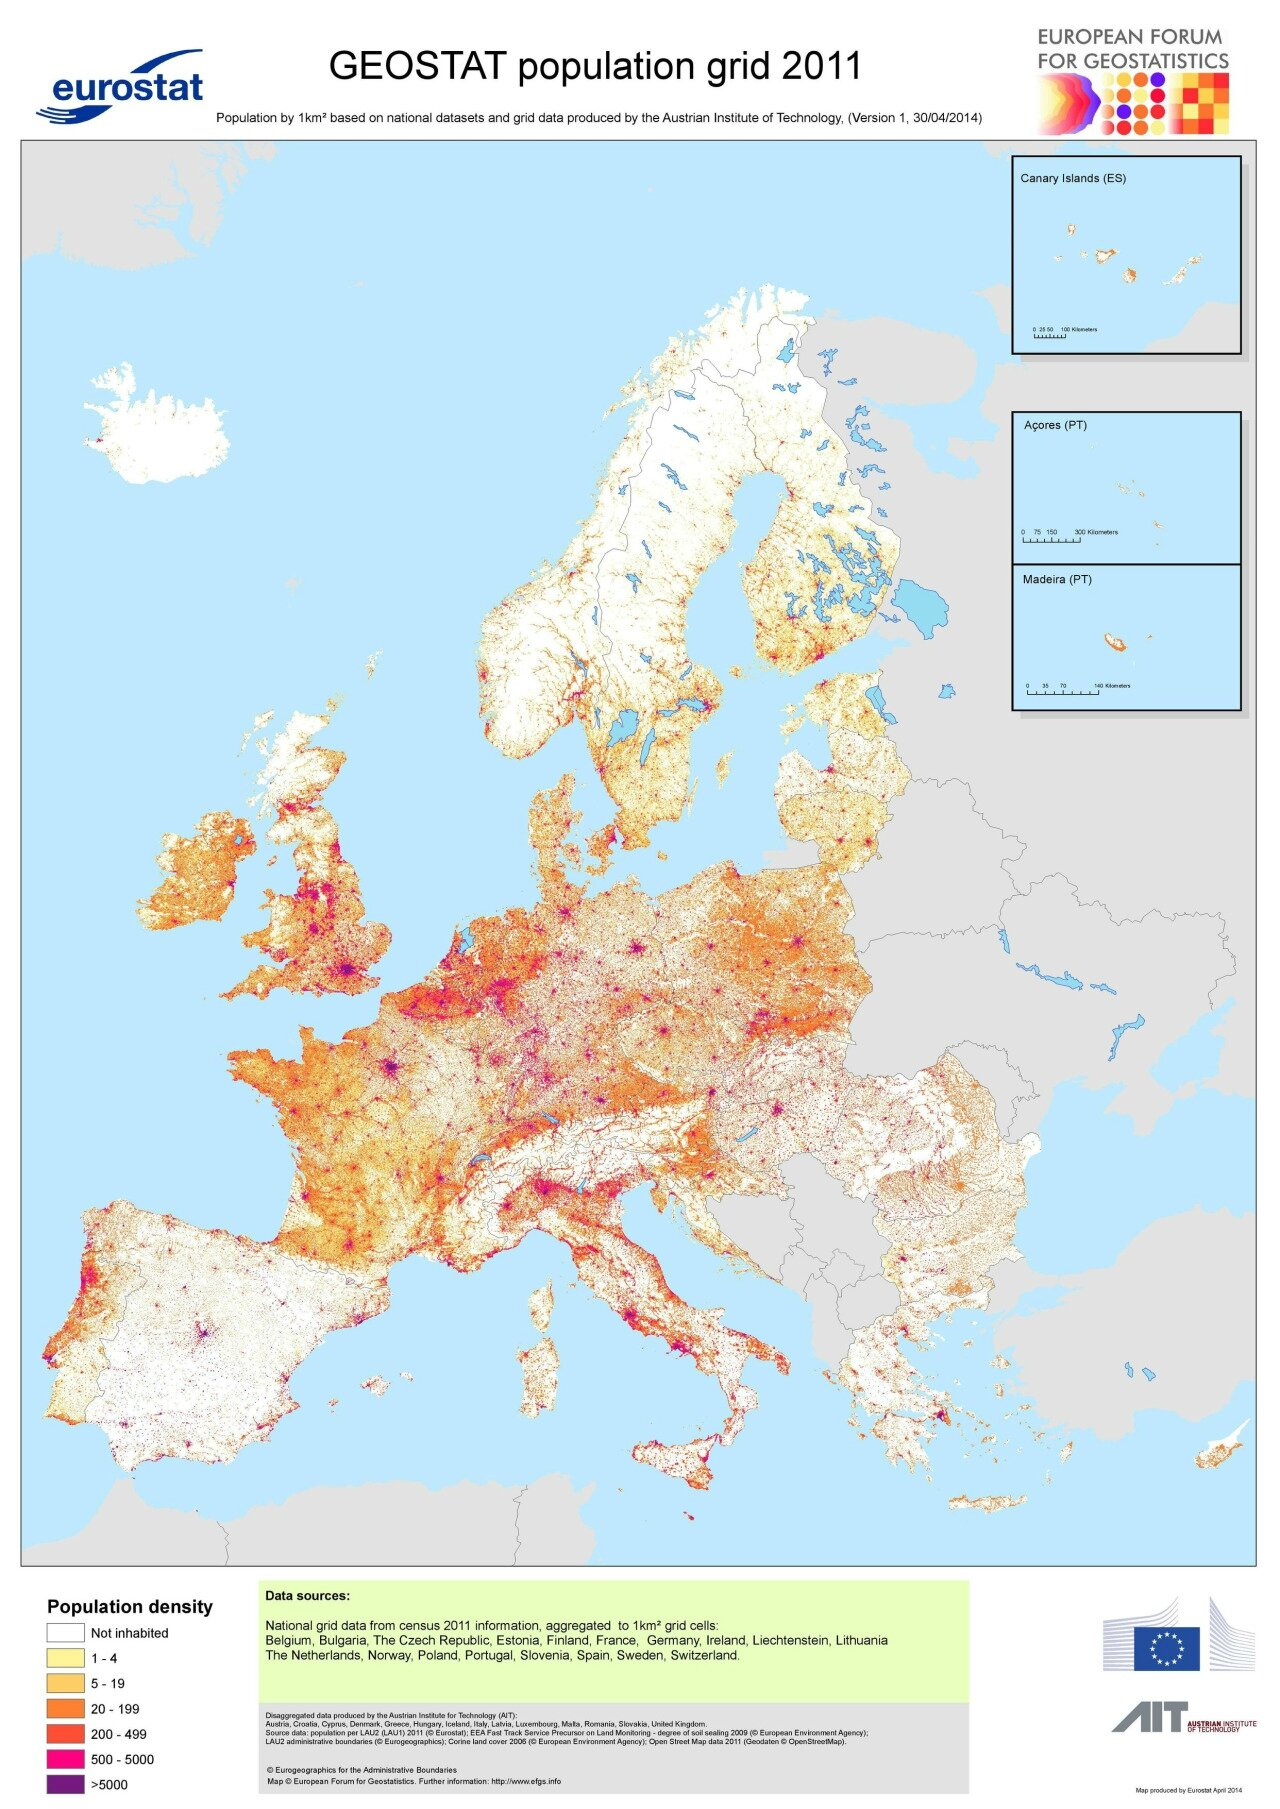 Population density in Europe, 2011